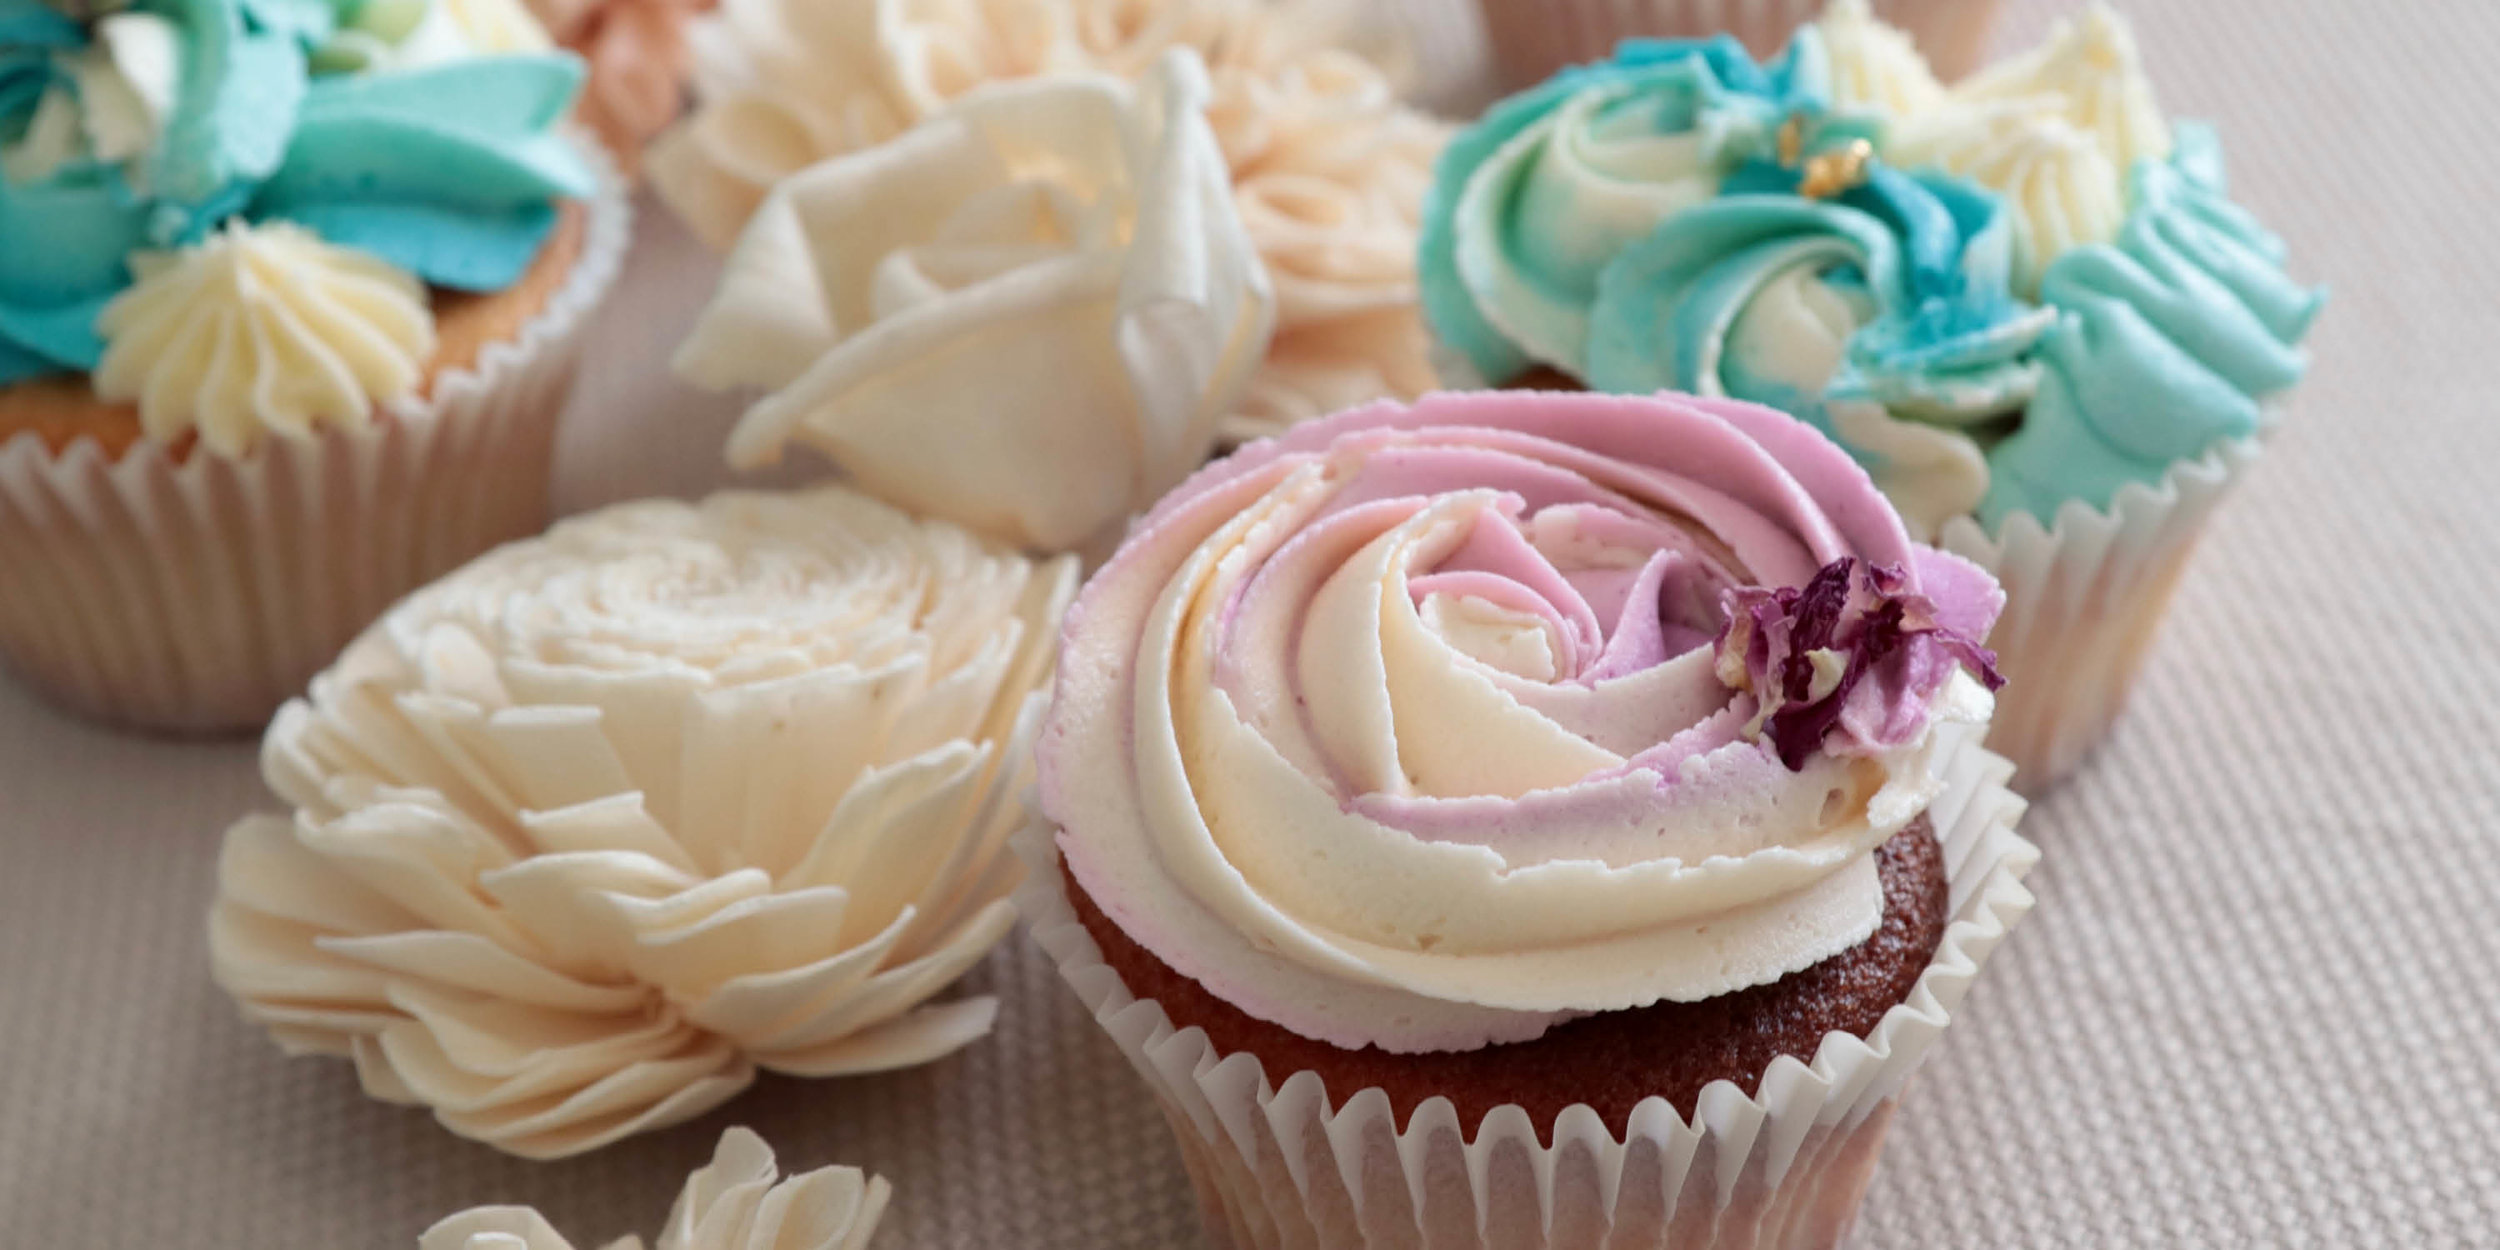 Cupcakes   Delicious and delicate    Order now